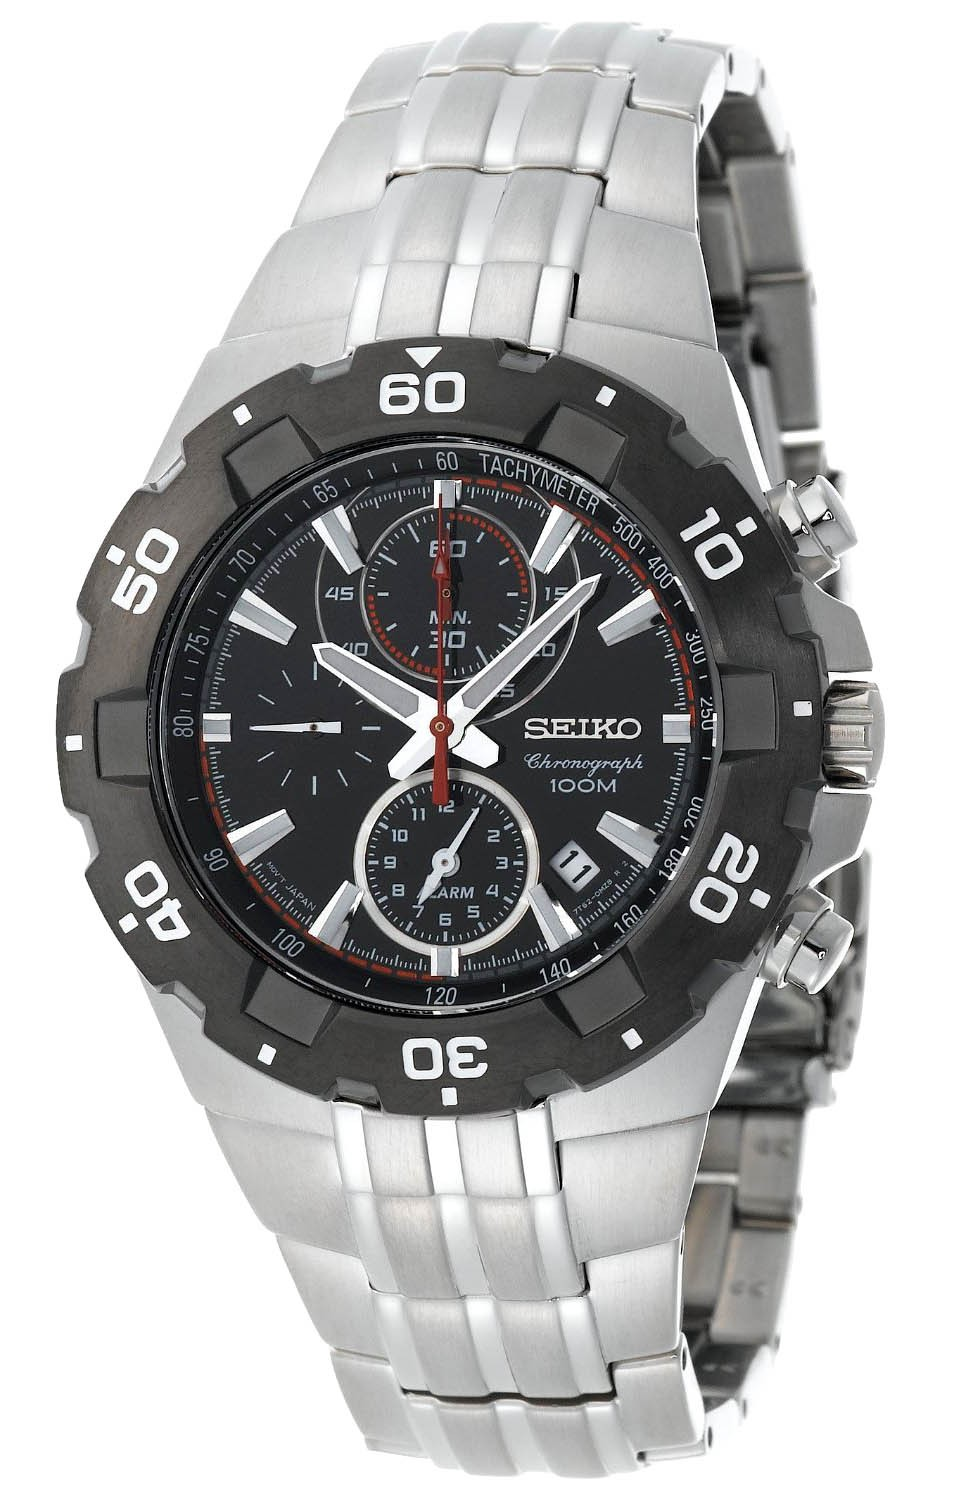 Seiko Alarm Chronograph SNAD35 SNAD35P SNAD35P1 WR100m Mens Watch